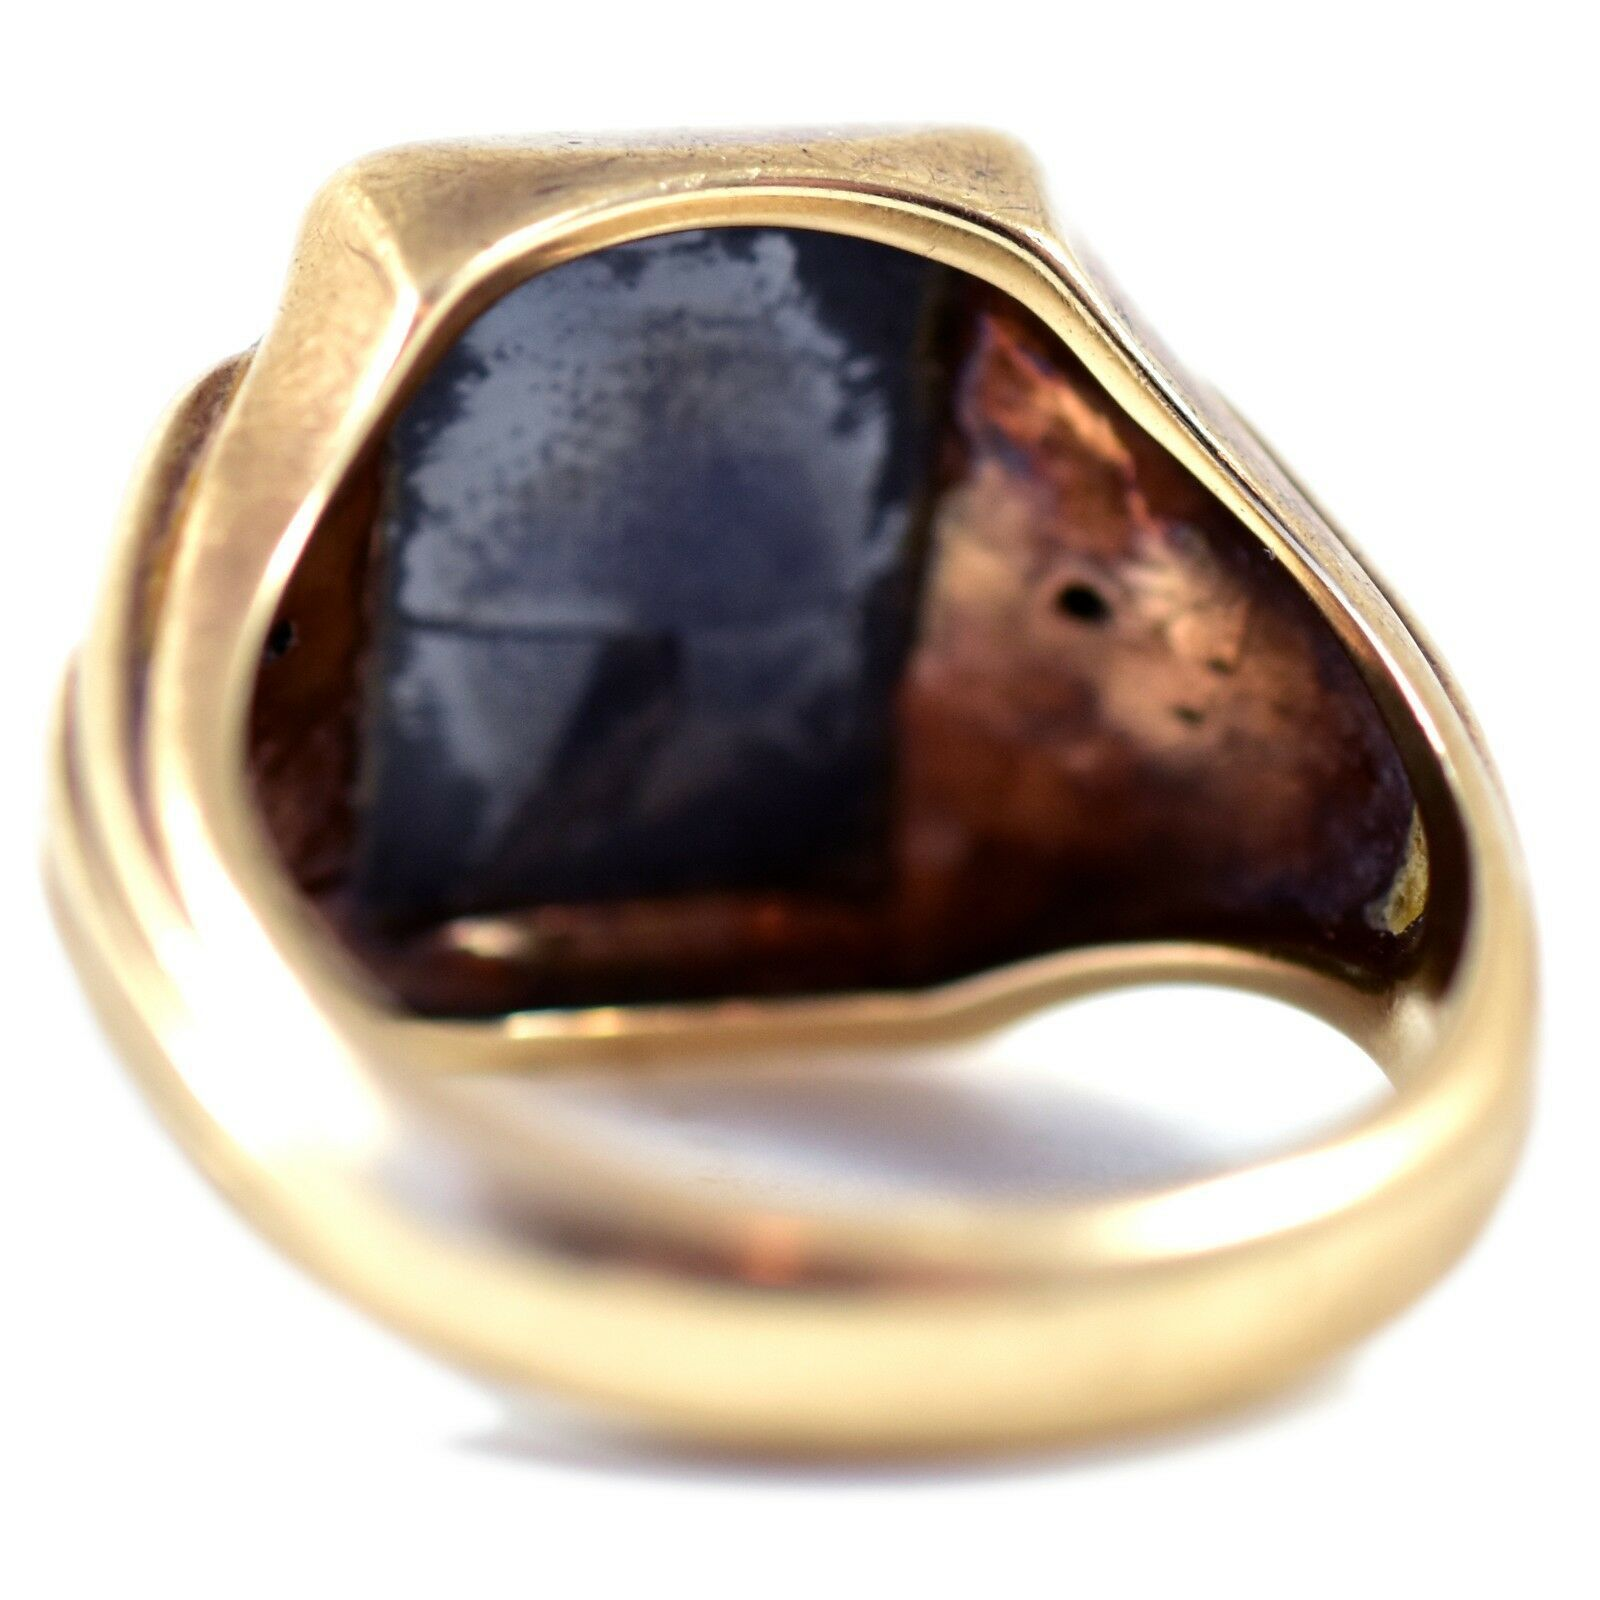 Royal 10k Solid Yellow Gold Hematite Roman Bust with Diamond Accents Ring 10.5